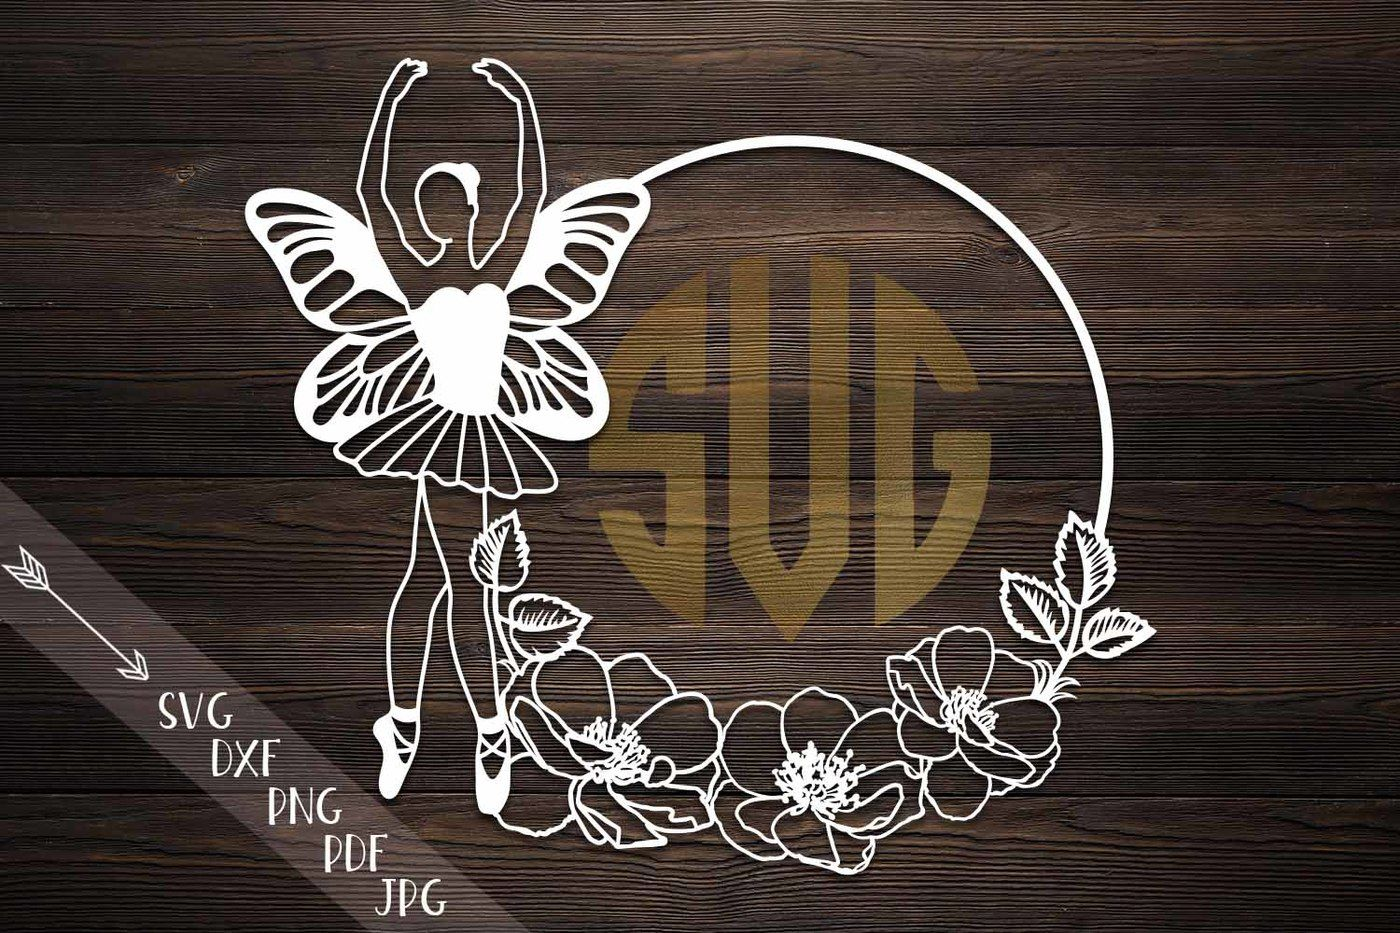 Ballerina Butterfly Wings Svg File Cutting Template Papercut